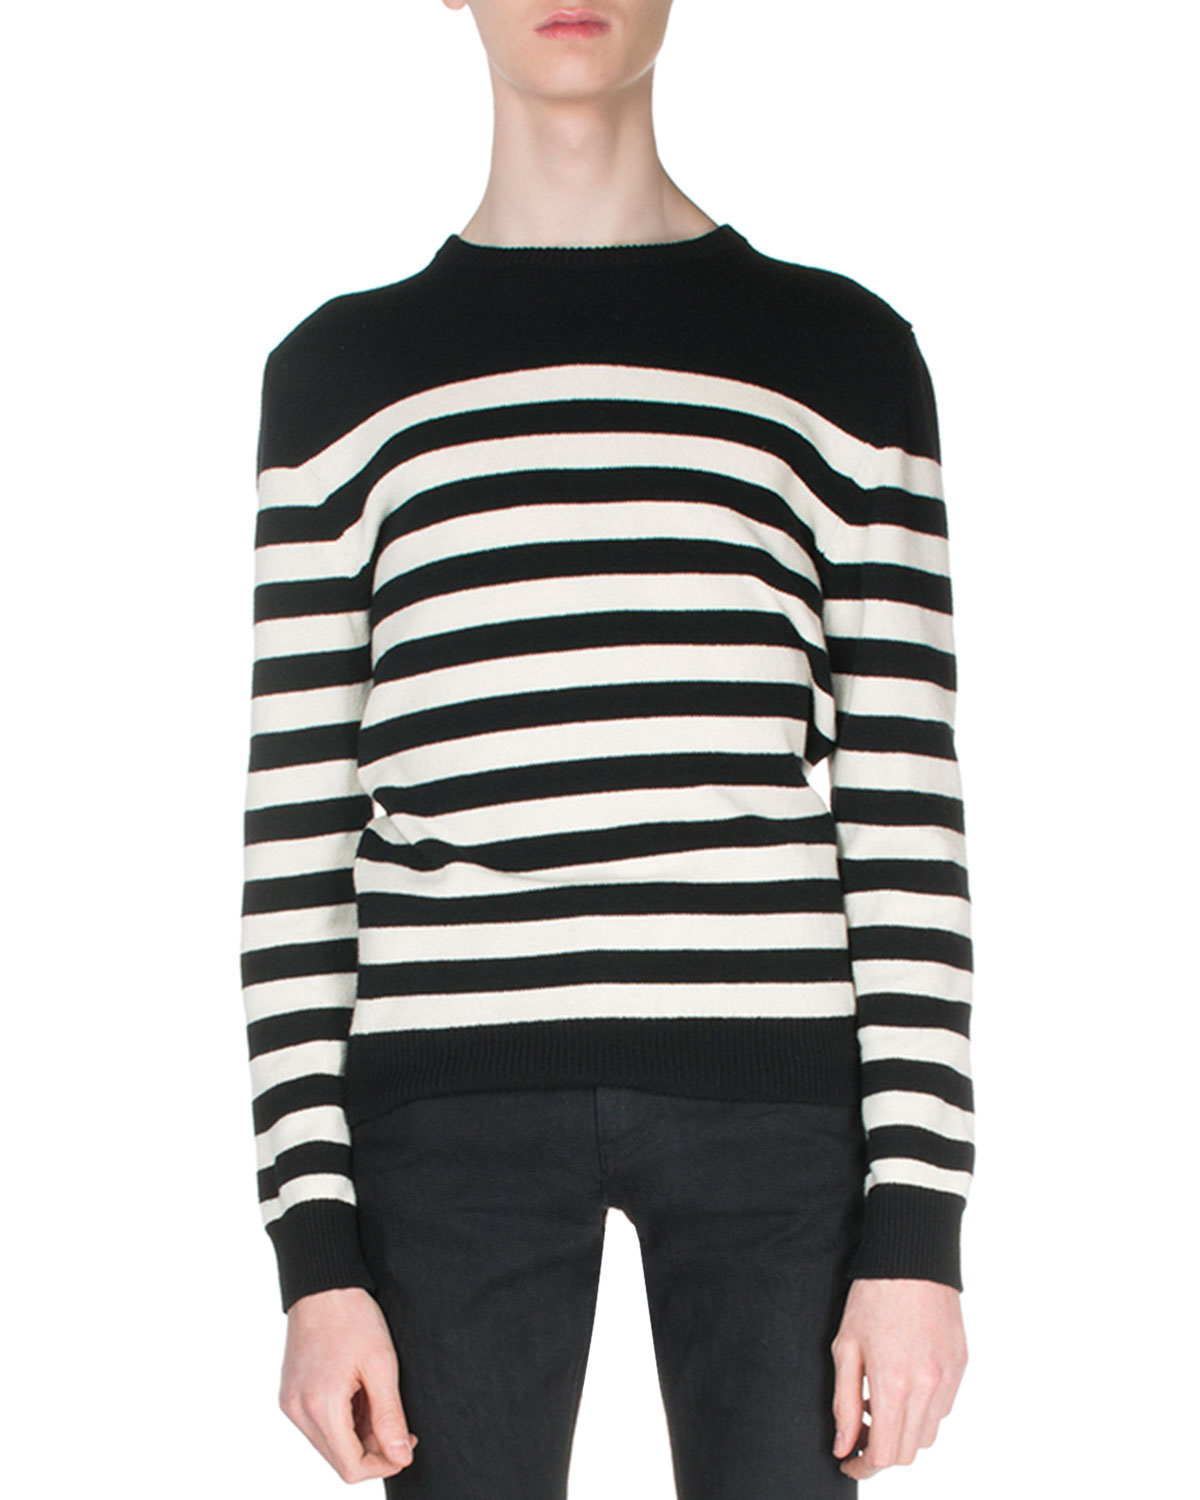 Yves Saint Laurent Striped Cashmere Sweater, Black/White, Men's, Size: M